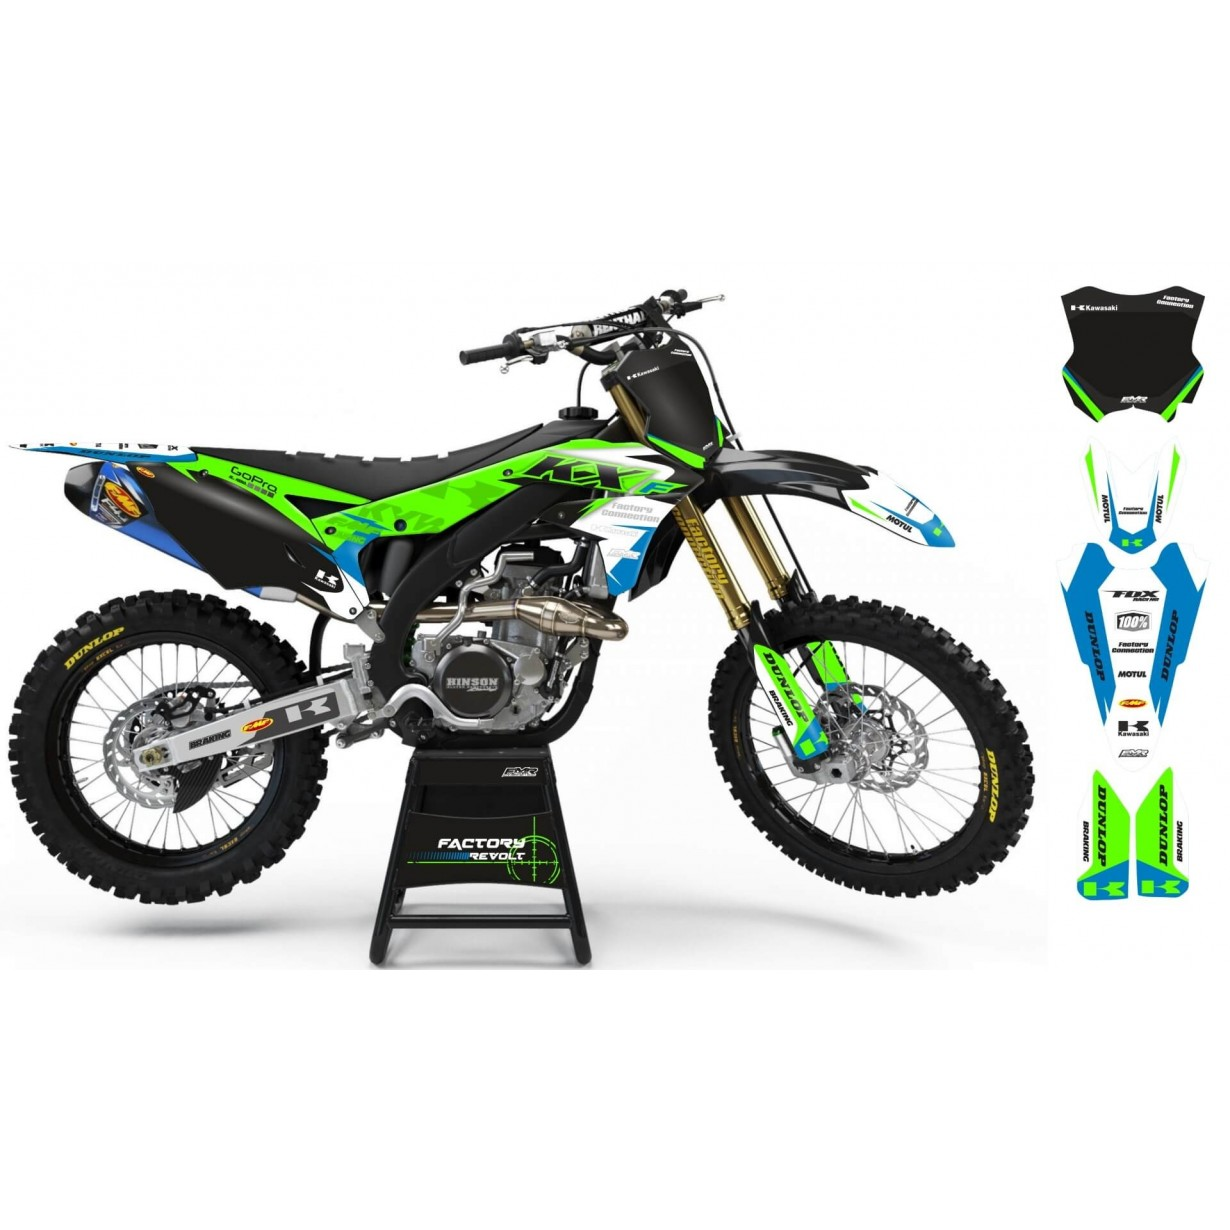 Kit déco Perso KAWASAKI Factory Revolt A26B4 green/white/blue